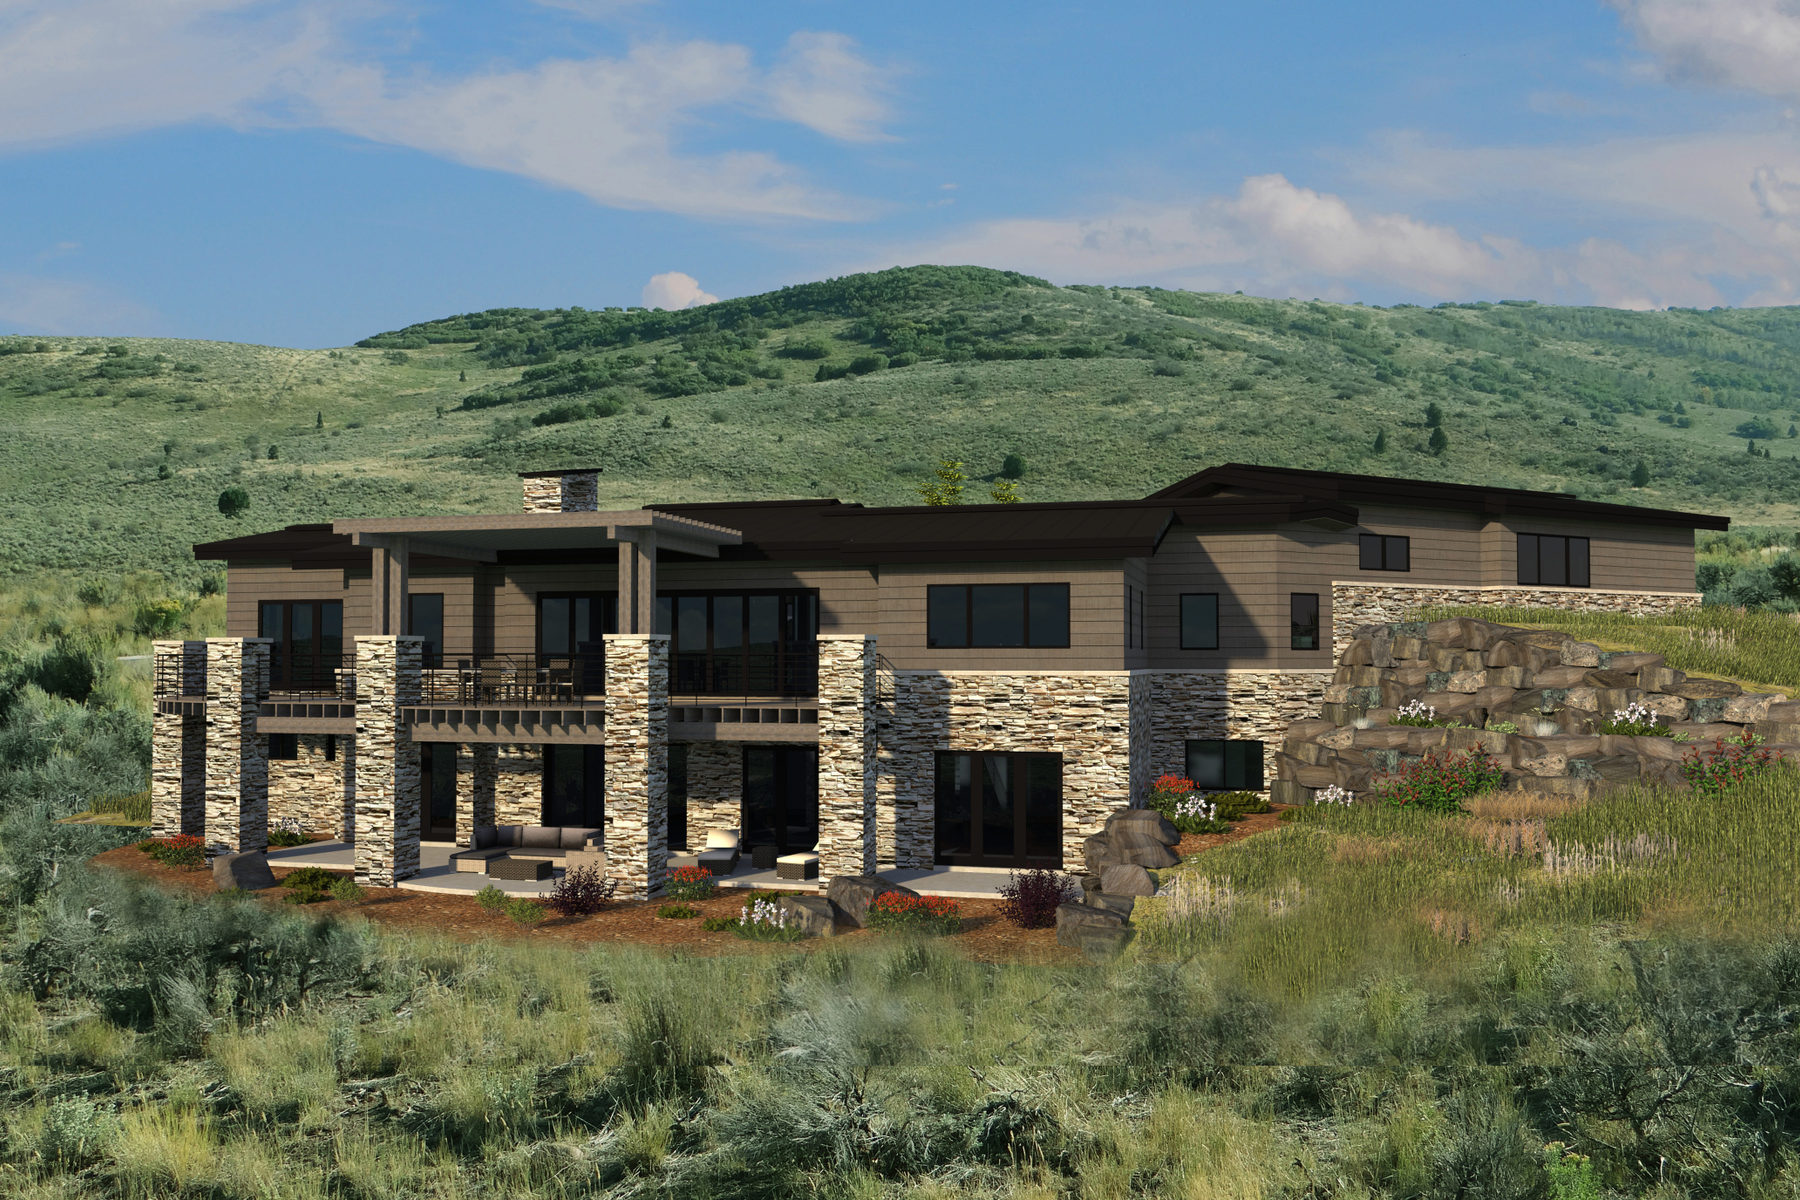 Tek Ailelik Ev için Satış at New Construction Mountain Modern meets the Western Dream 5950 Caddis Cir Heber City, Utah 84032 Amerika Birleşik Devletleri